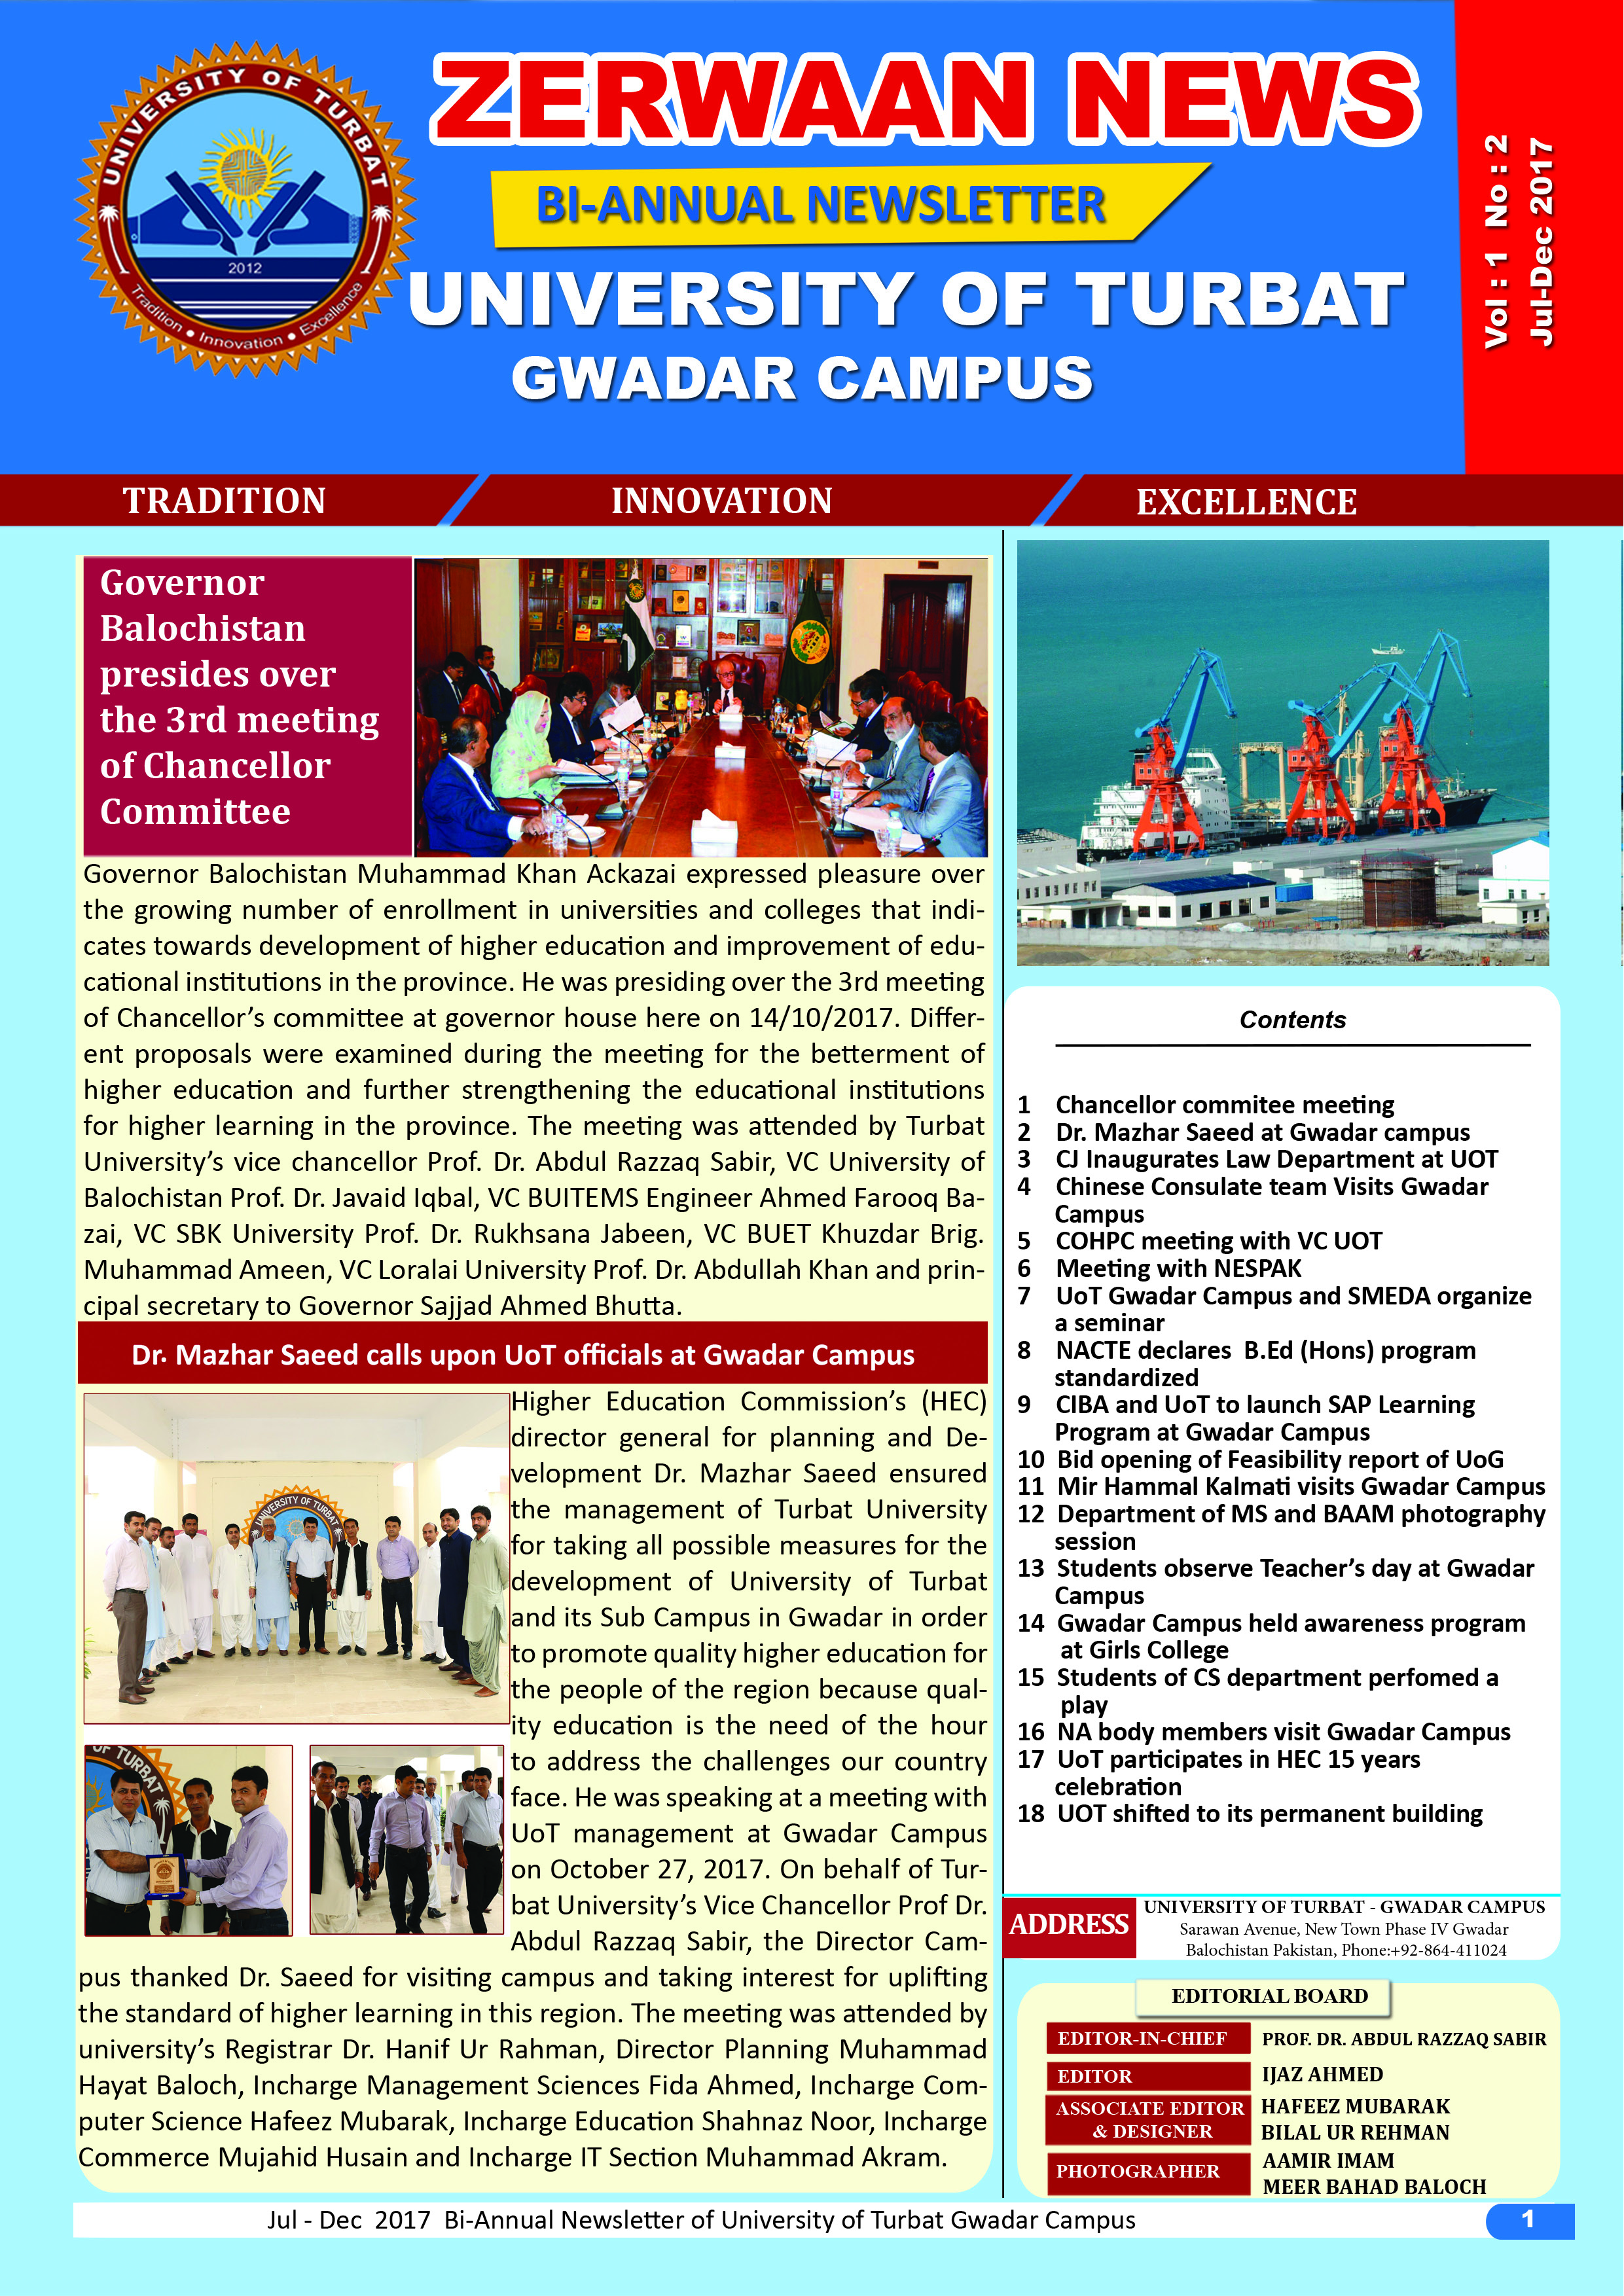 Zerwaan News July-December 2017 Edition